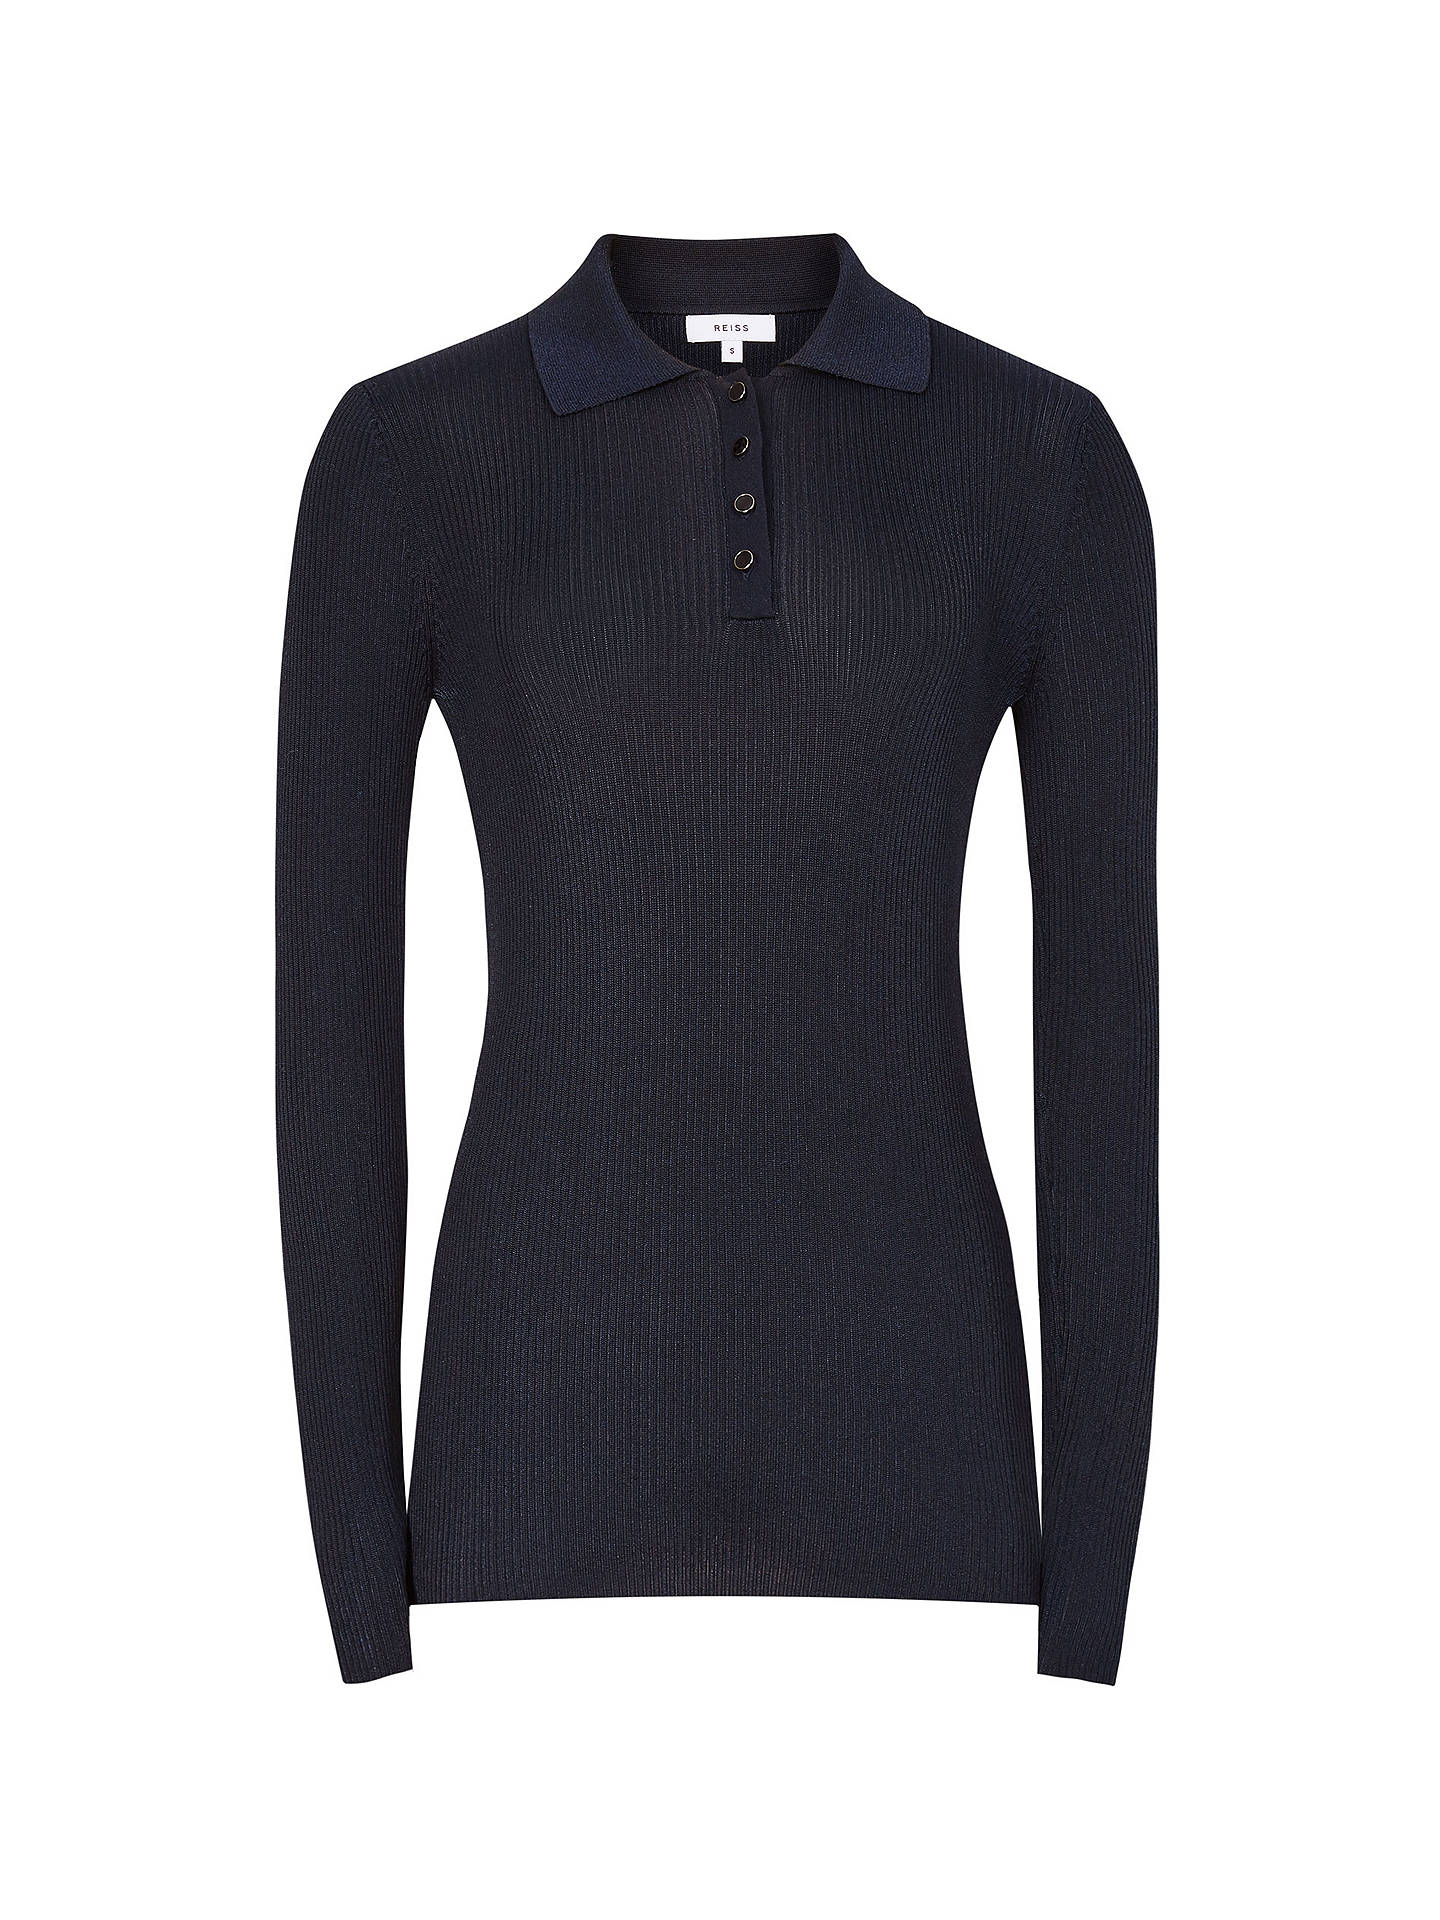 BuyReiss Long Sleeve Knitted Polo Shirt, Navy, L Online at johnlewis.com